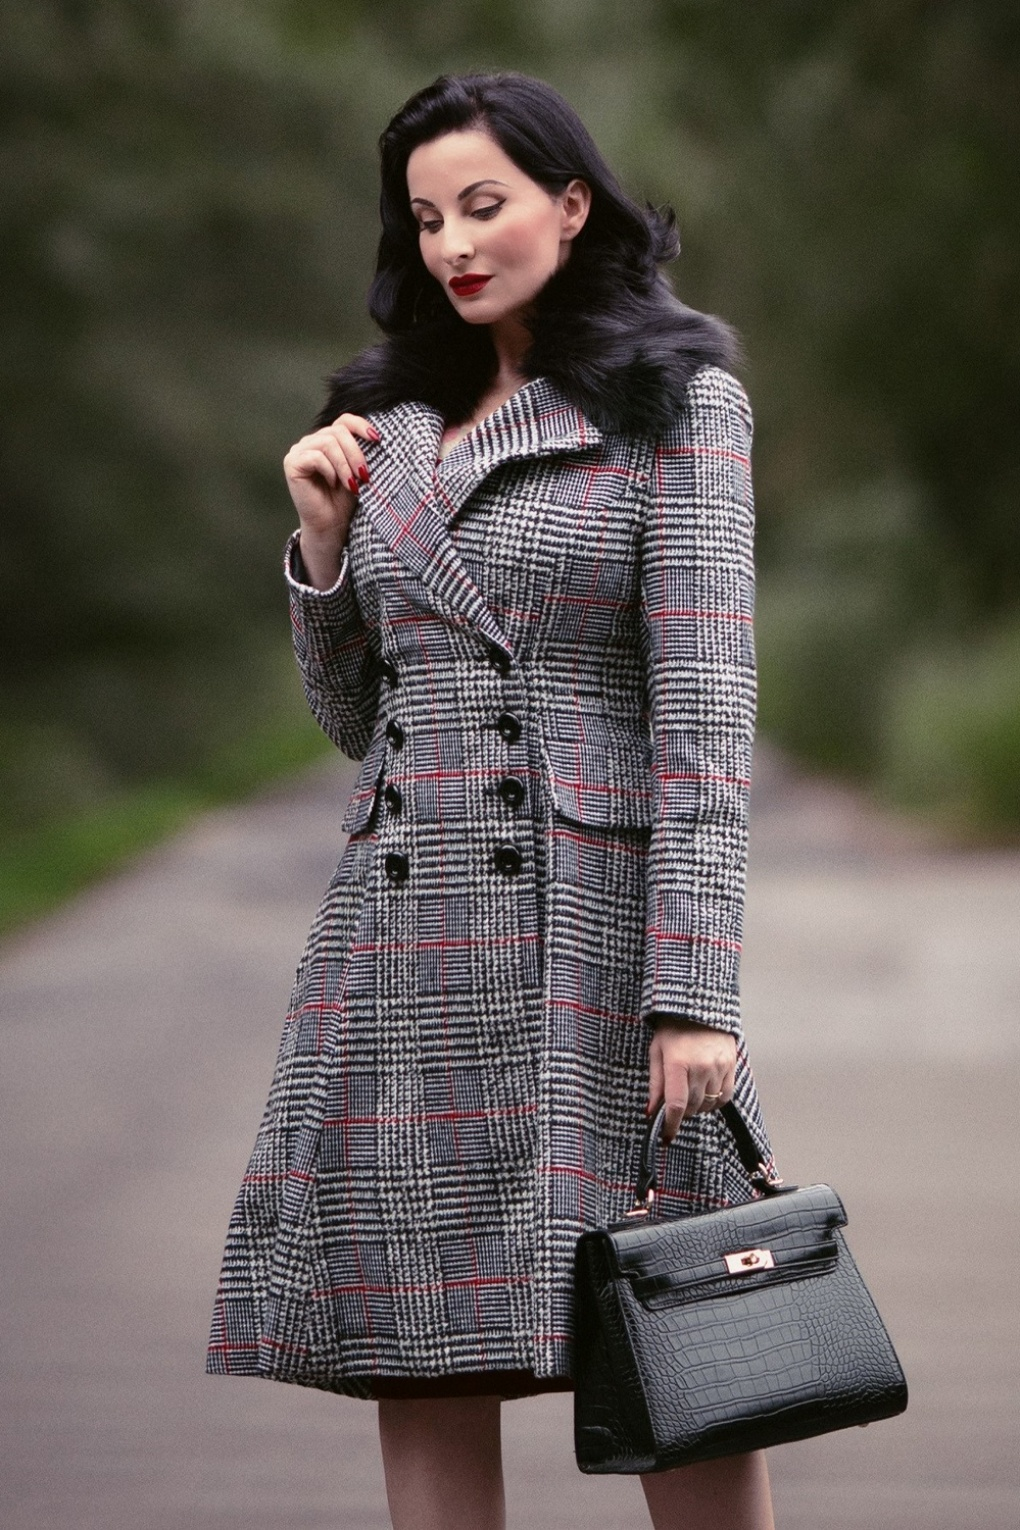 Vintage Coats & Jackets | Retro Coats and Jackets 50s Pascale Check Coat in Black and White £119.95 AT vintagedancer.com